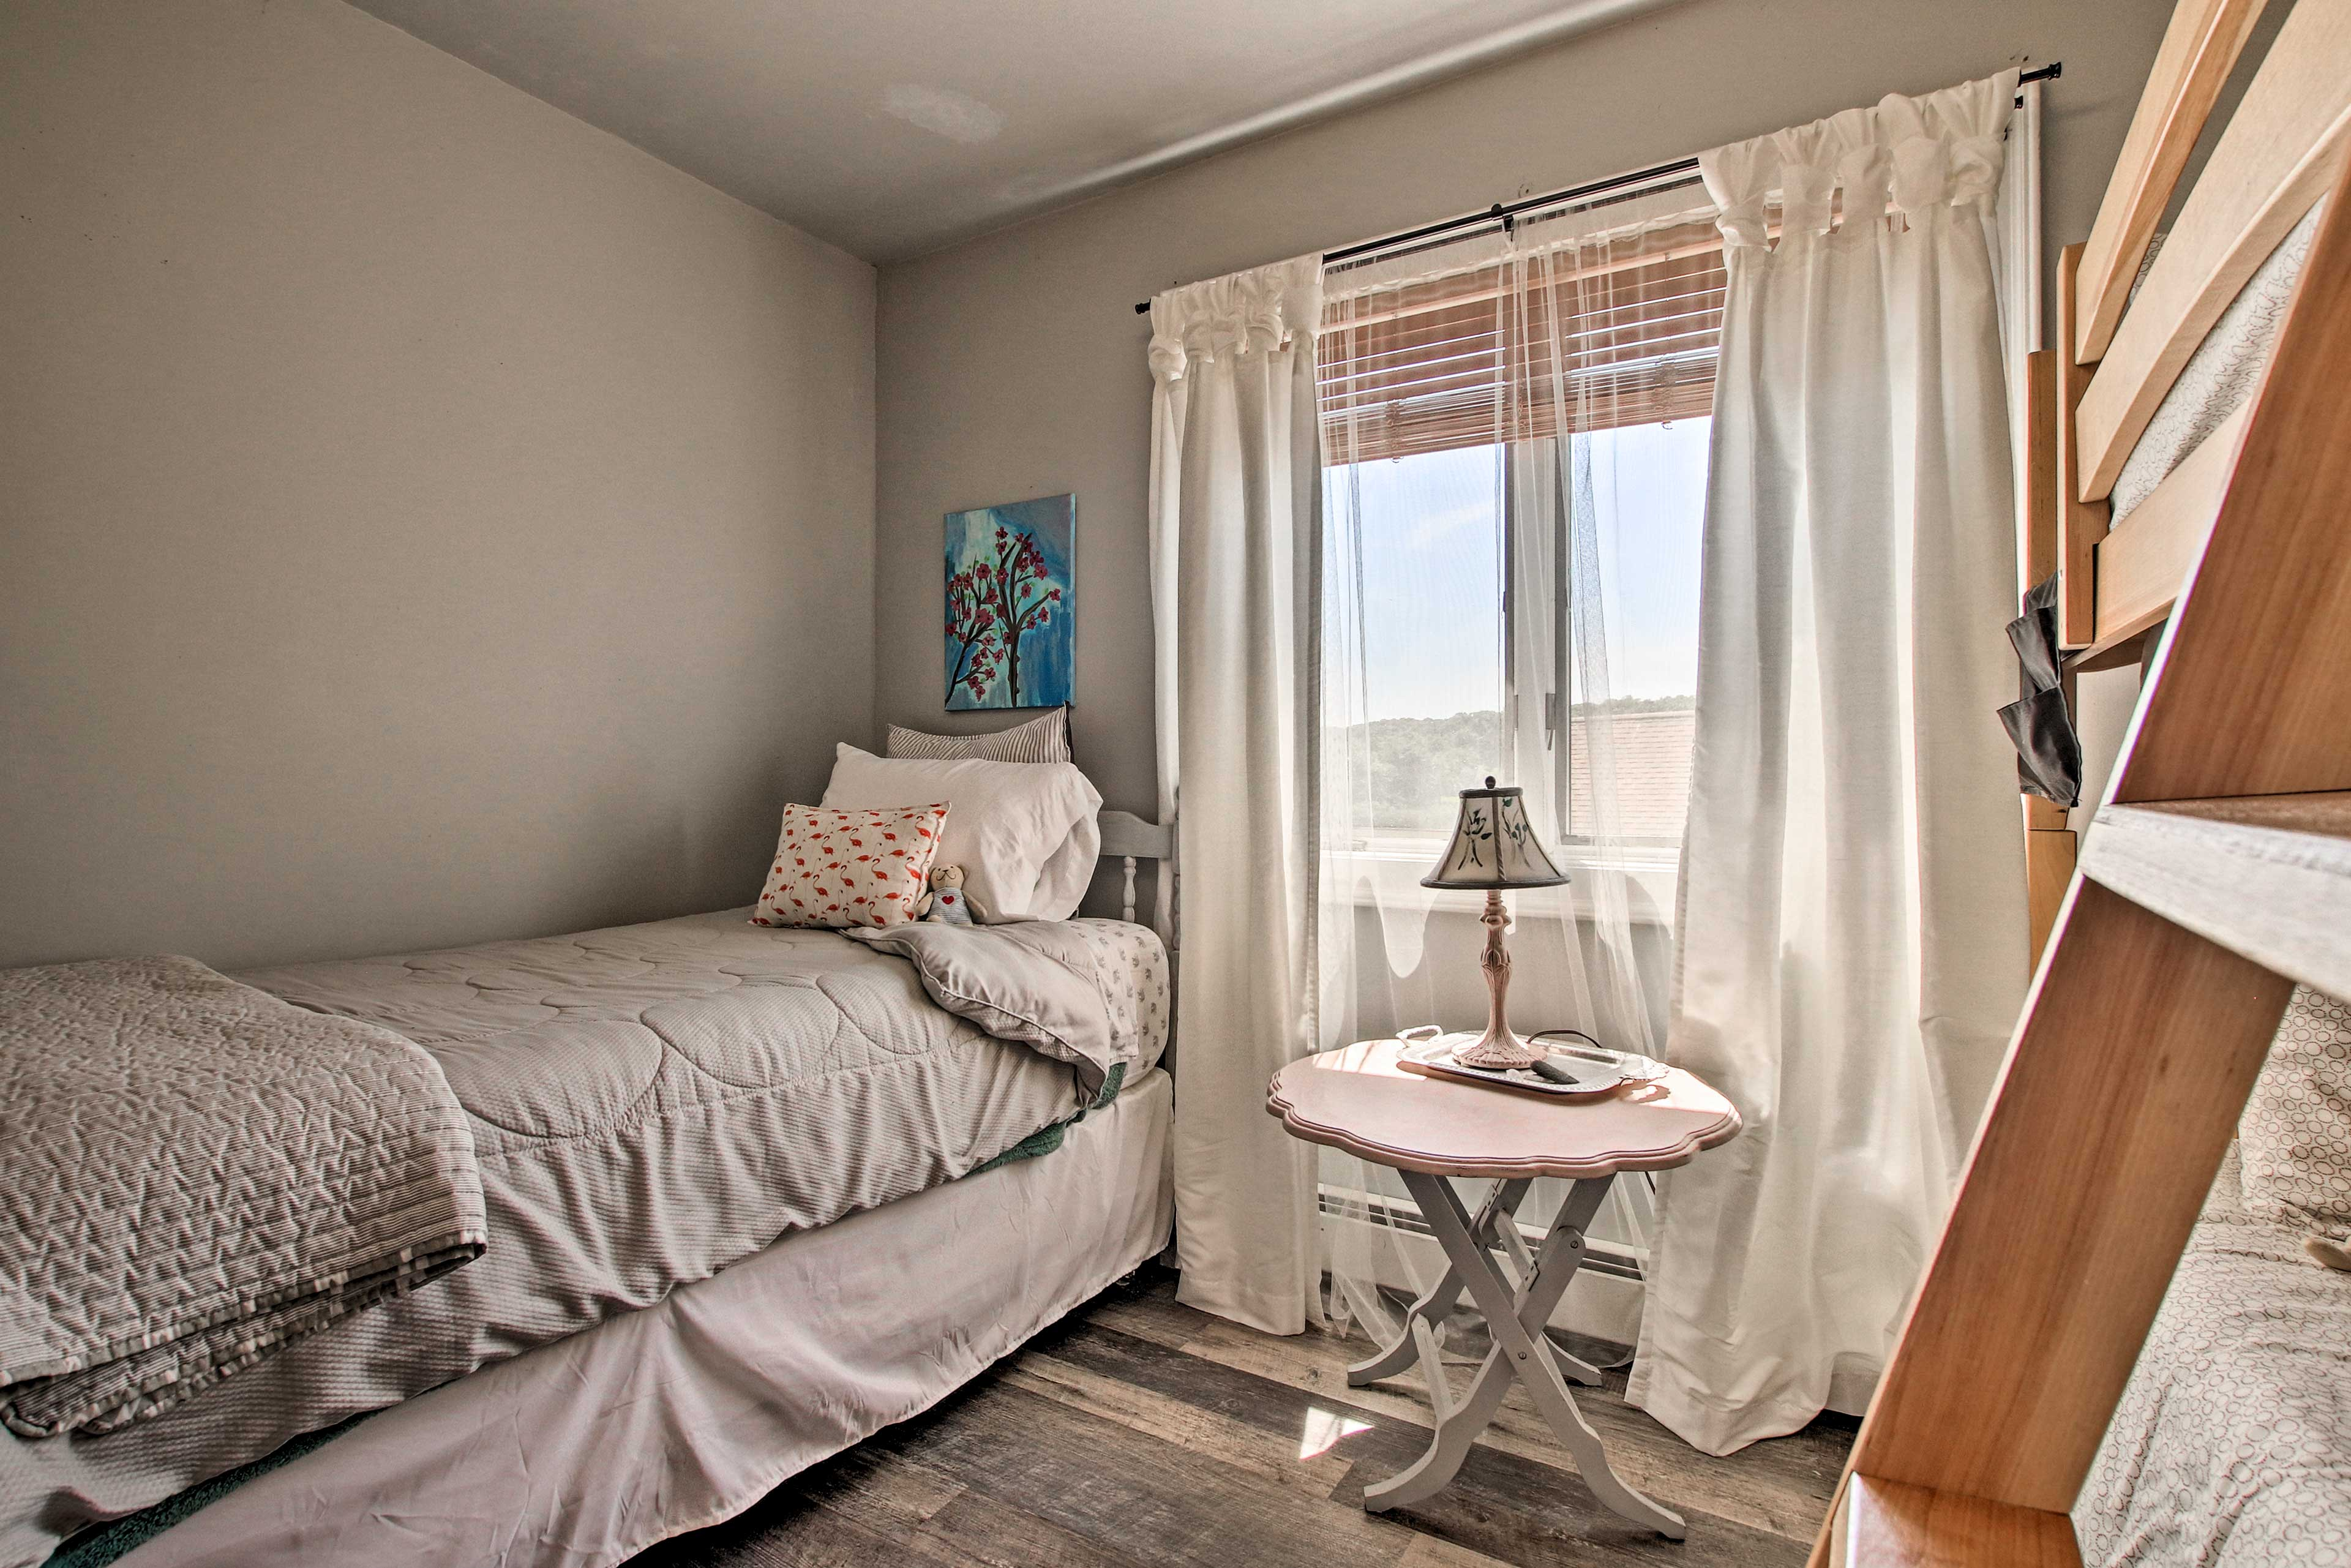 Linens are provided during your stay.